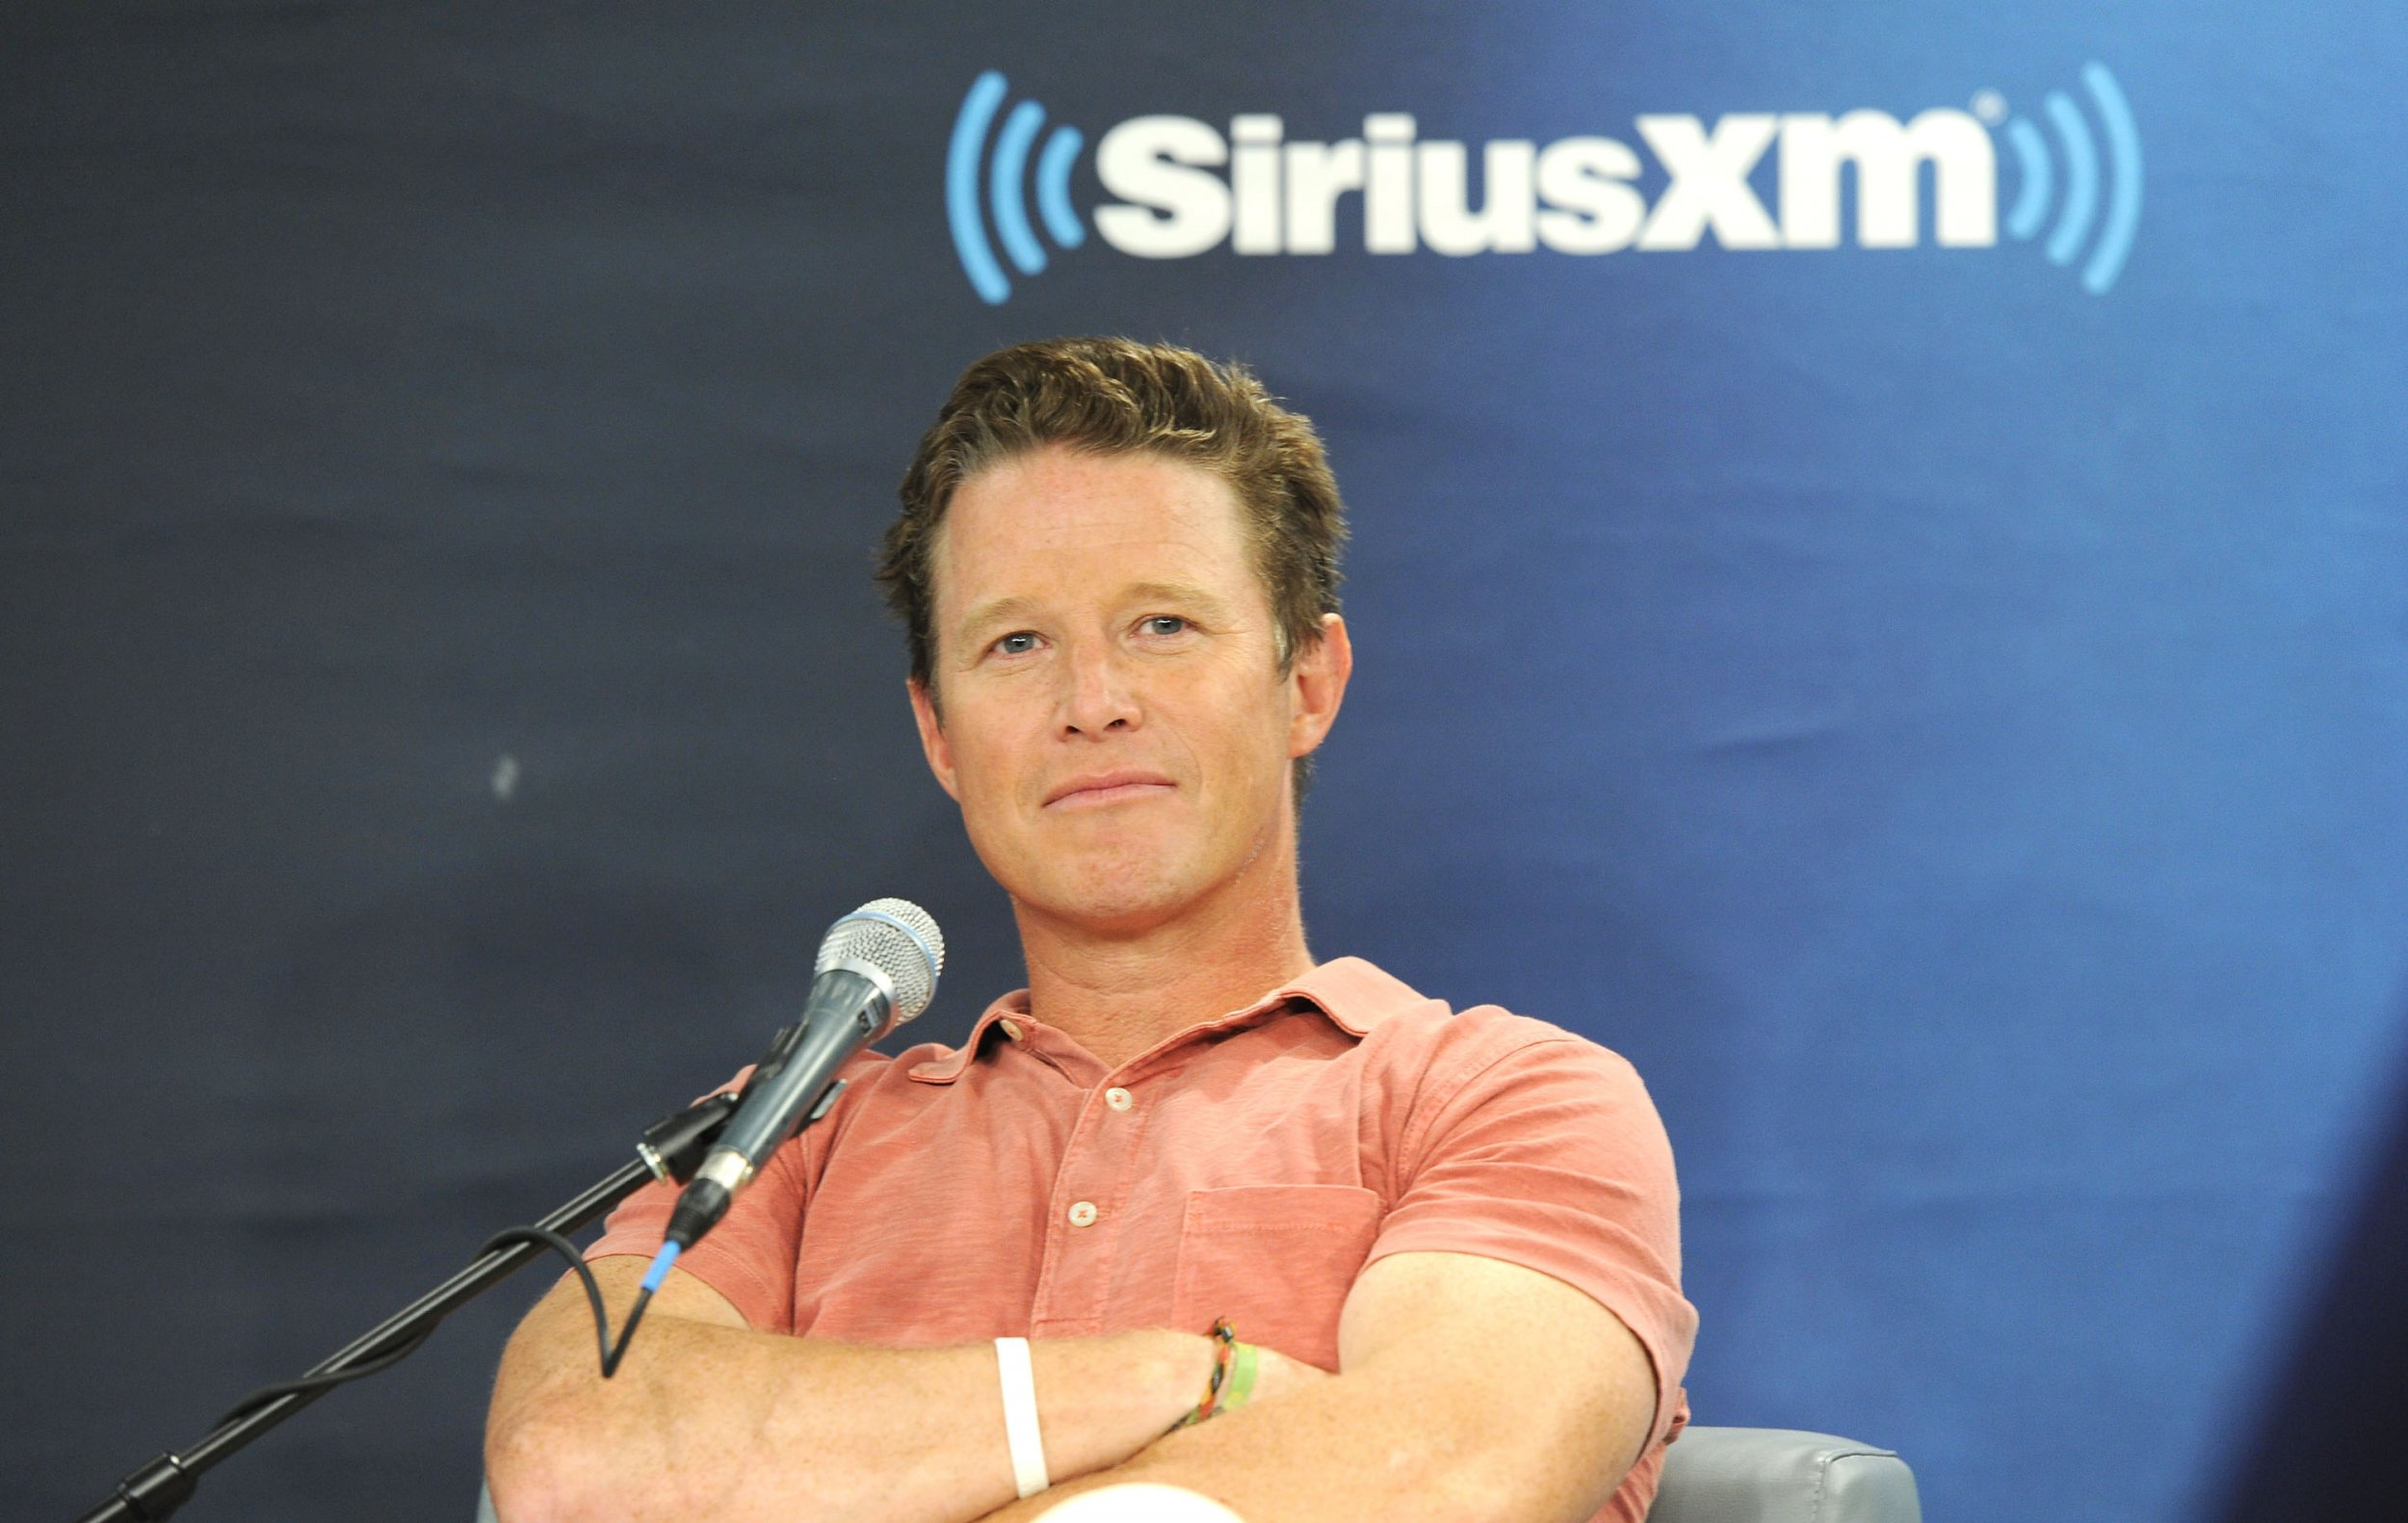 Billy Bush speaks out against Trump